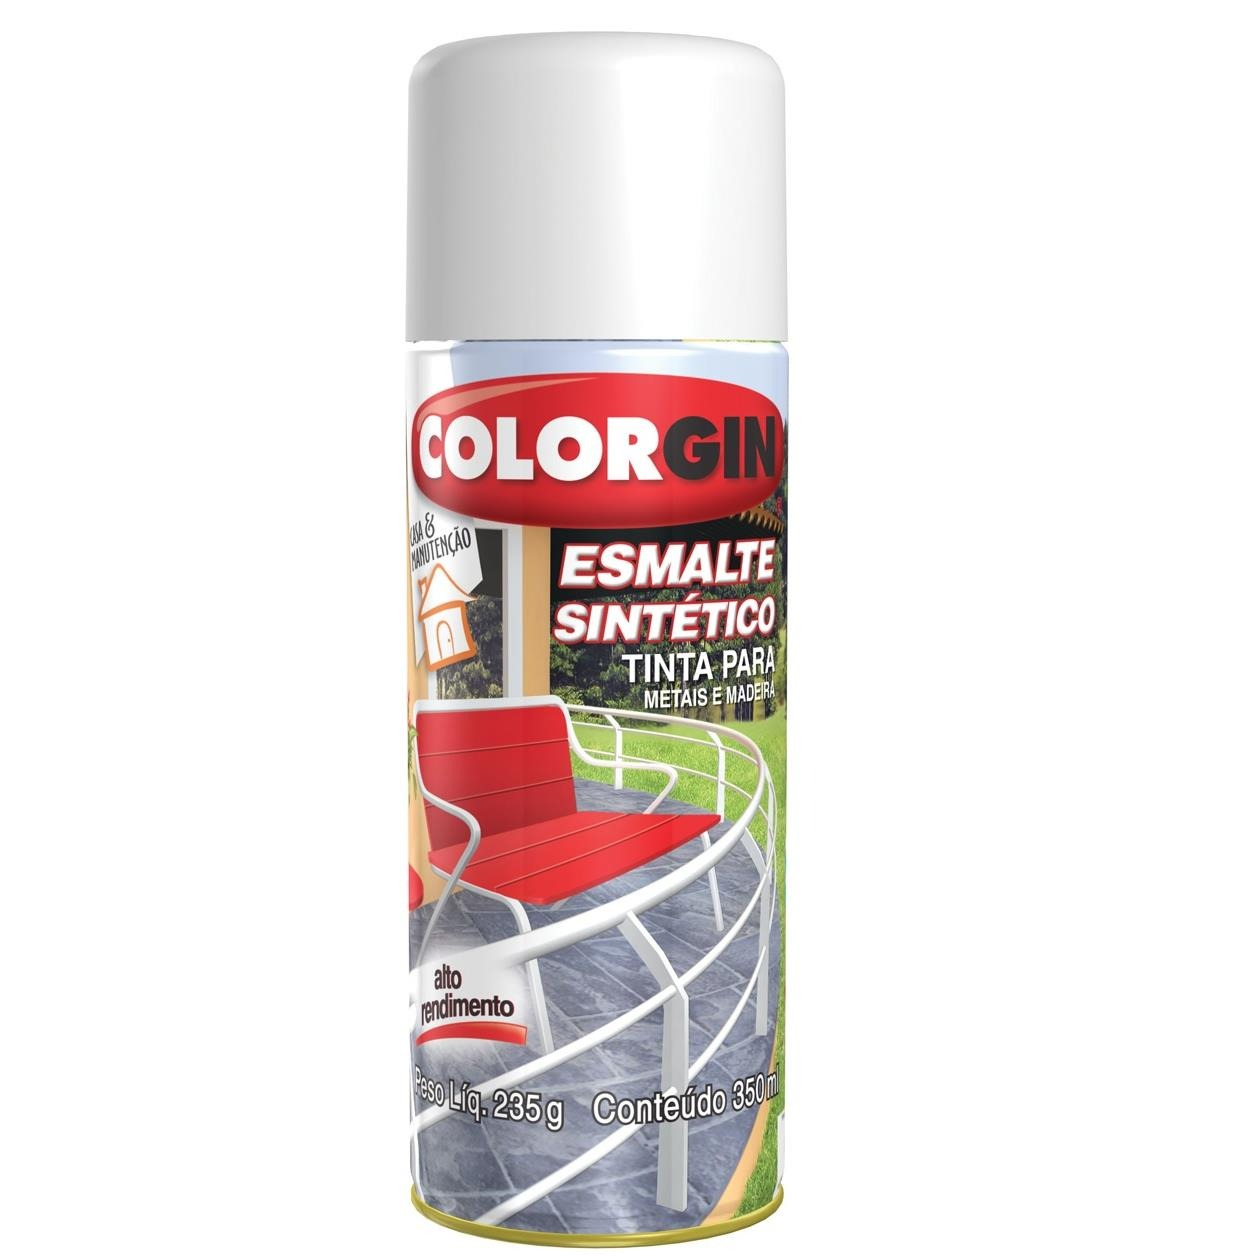 Tinta Spray Brilhante Esmalte sintetico Interno e Externo - Azul Medio - 350ml - Colorgin